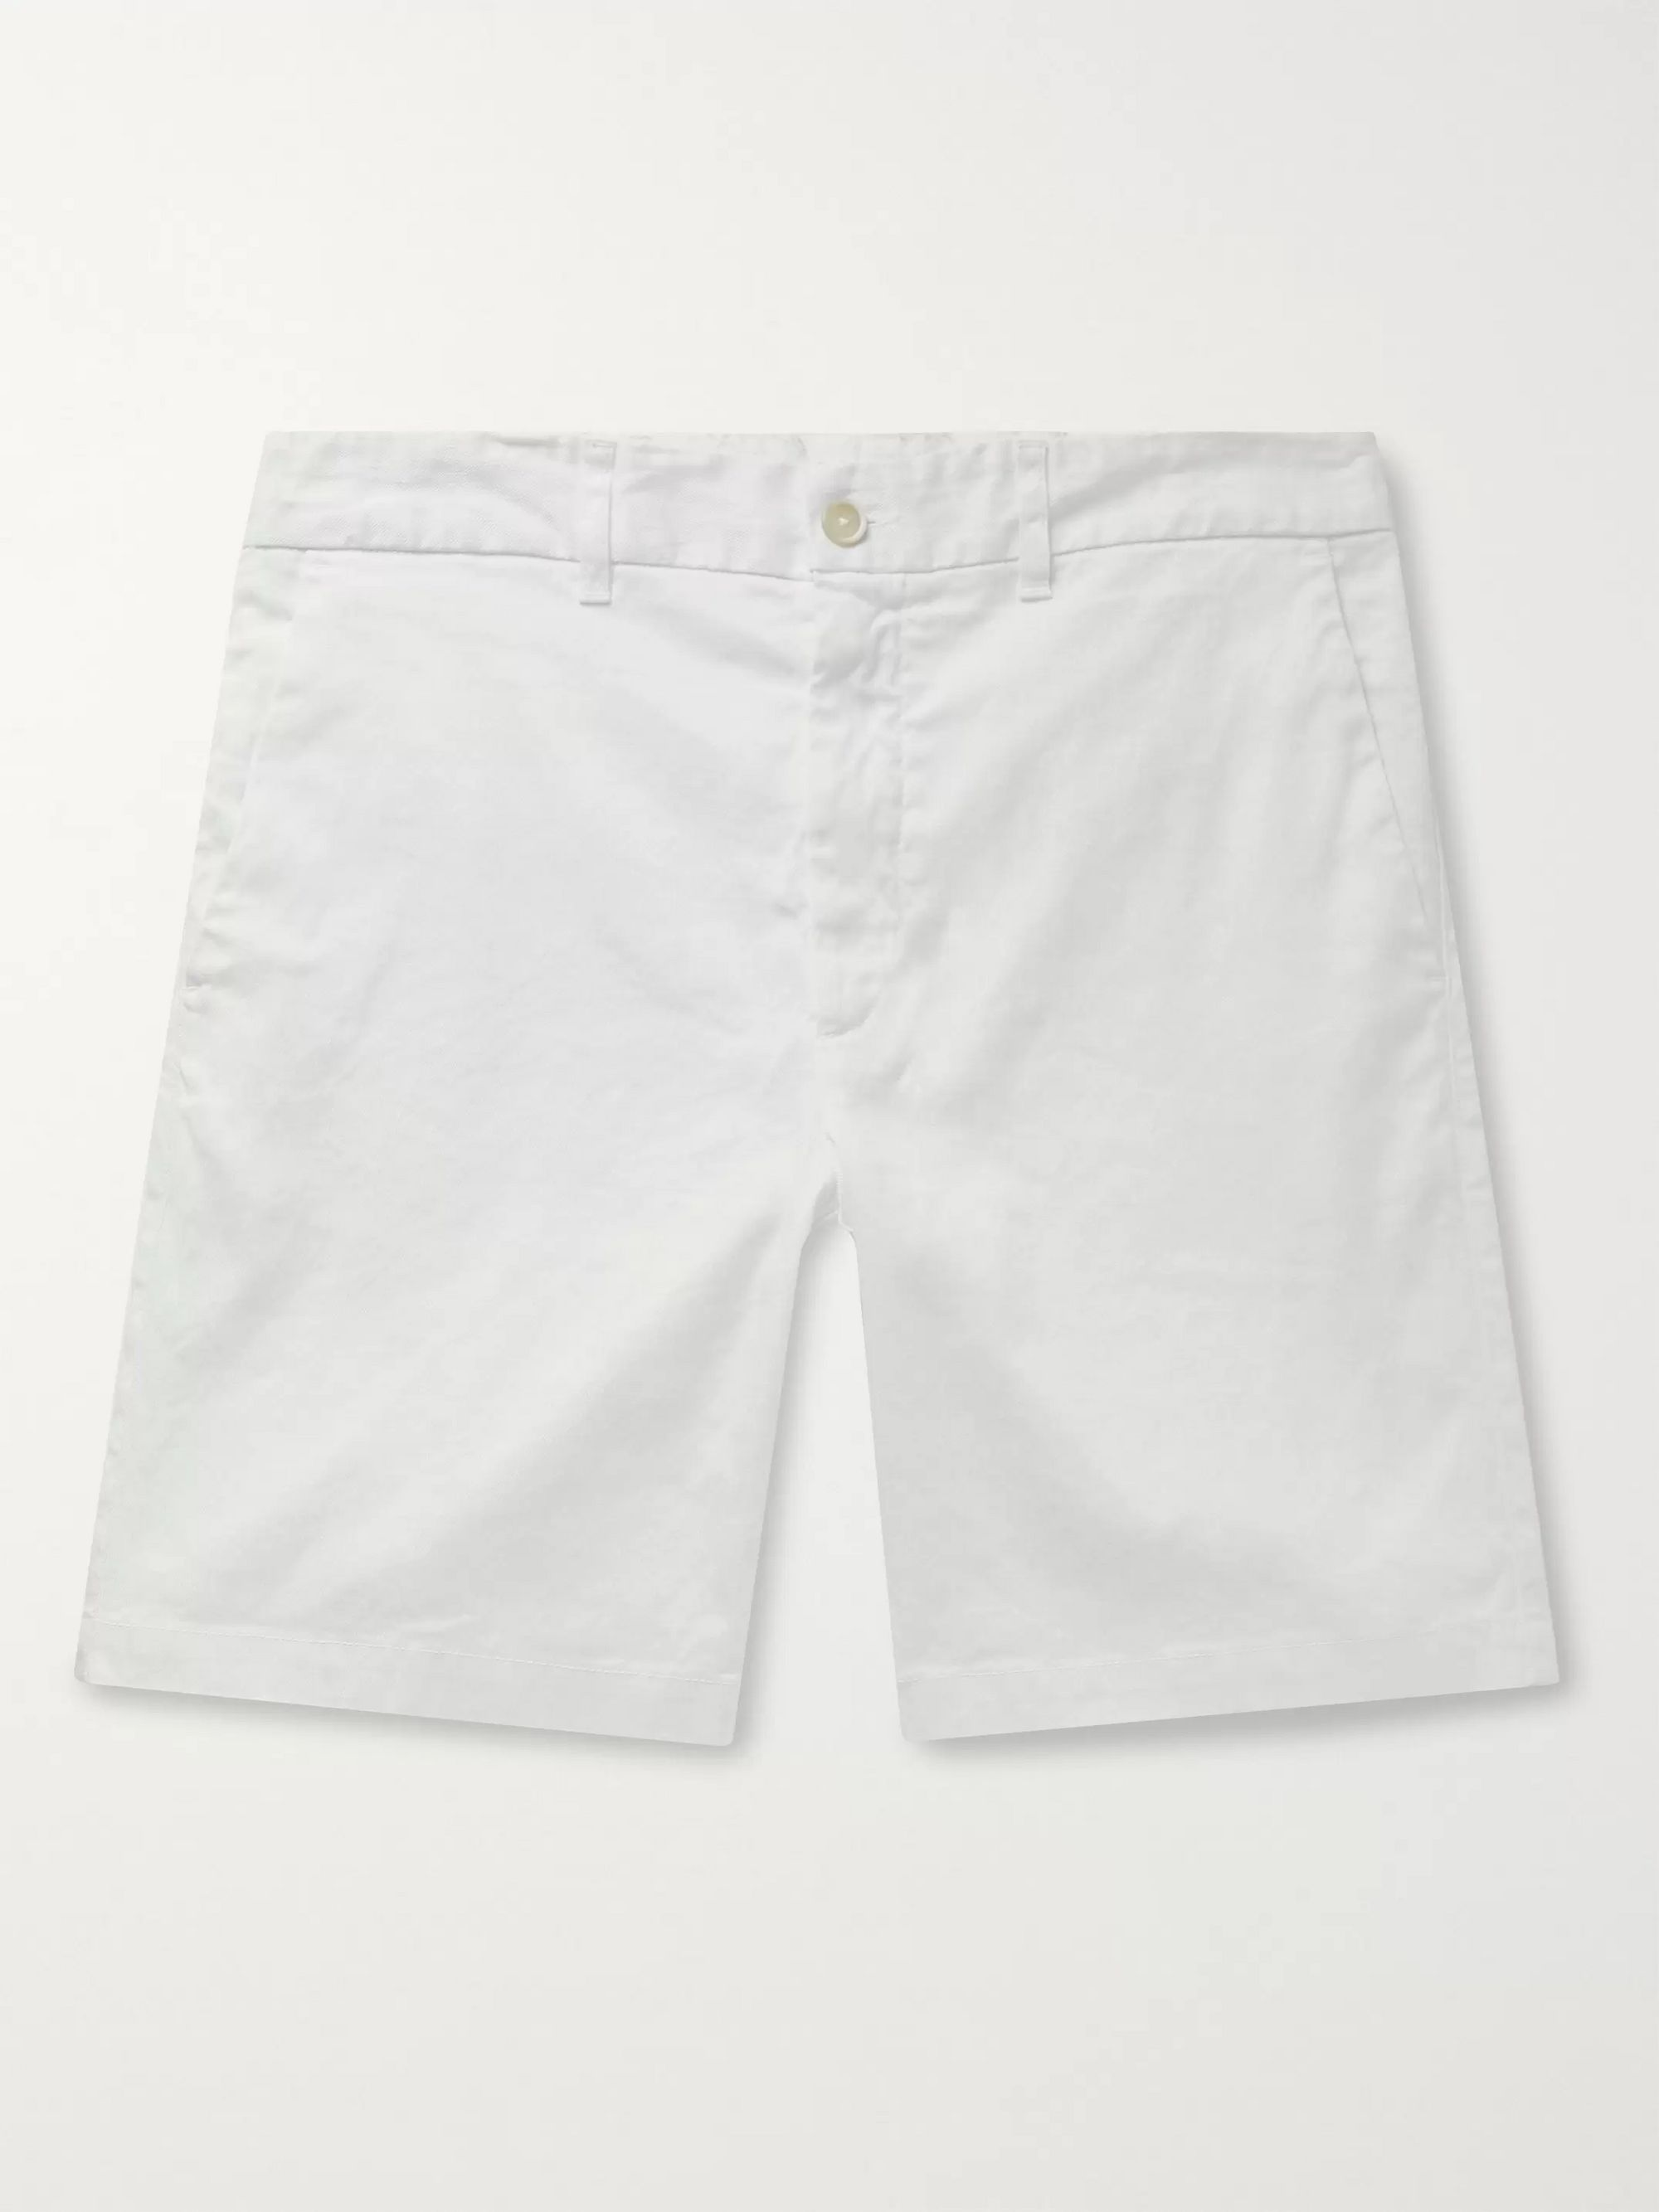 120% Slim-Fit Garment-Dyed Stretch Linen and Cotton-Blend Twill Shorts